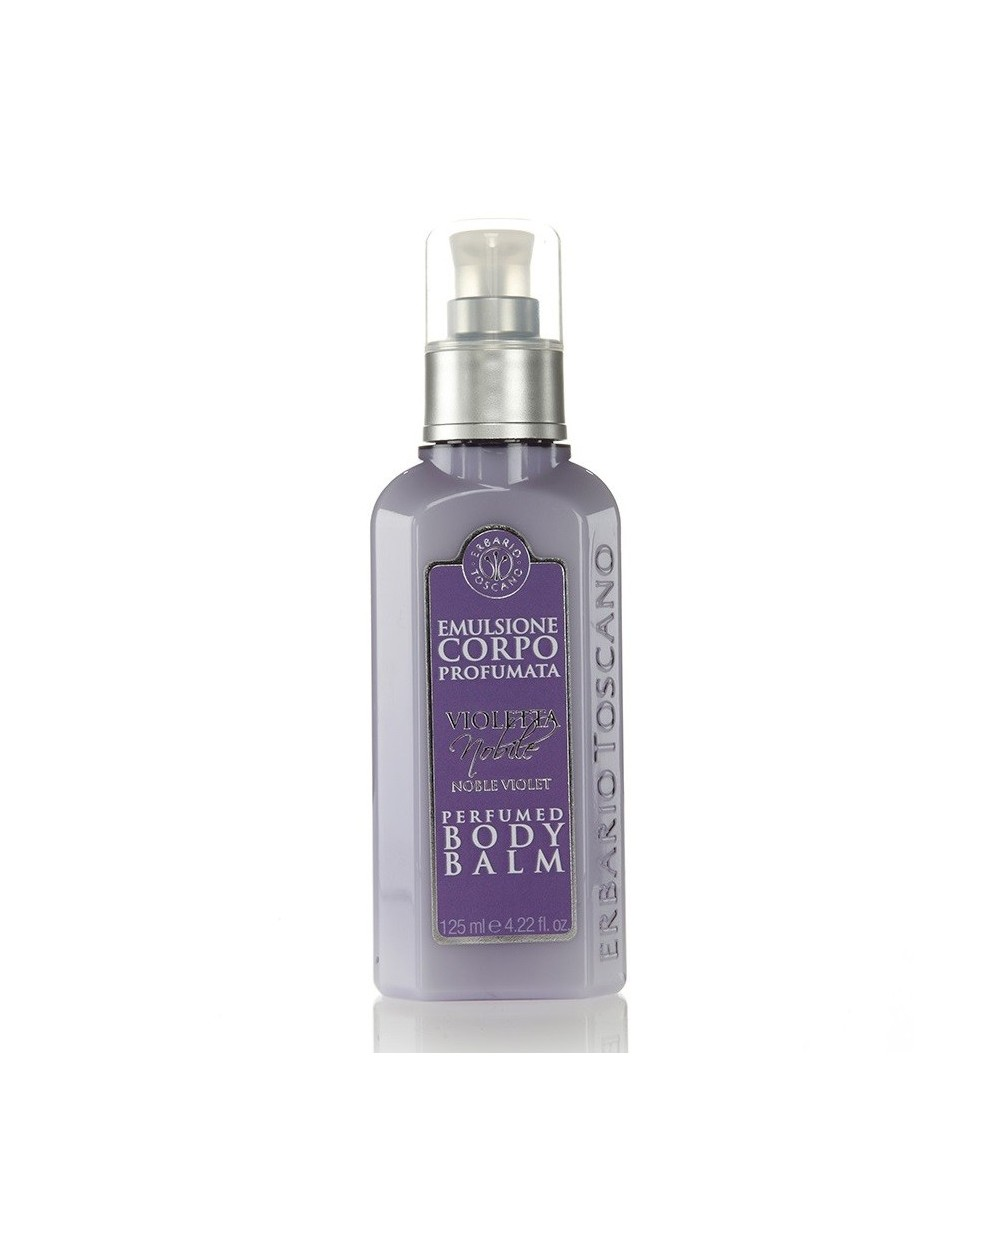 Erbario Toscano Noble Violet Perfumed Body Balm 125ml